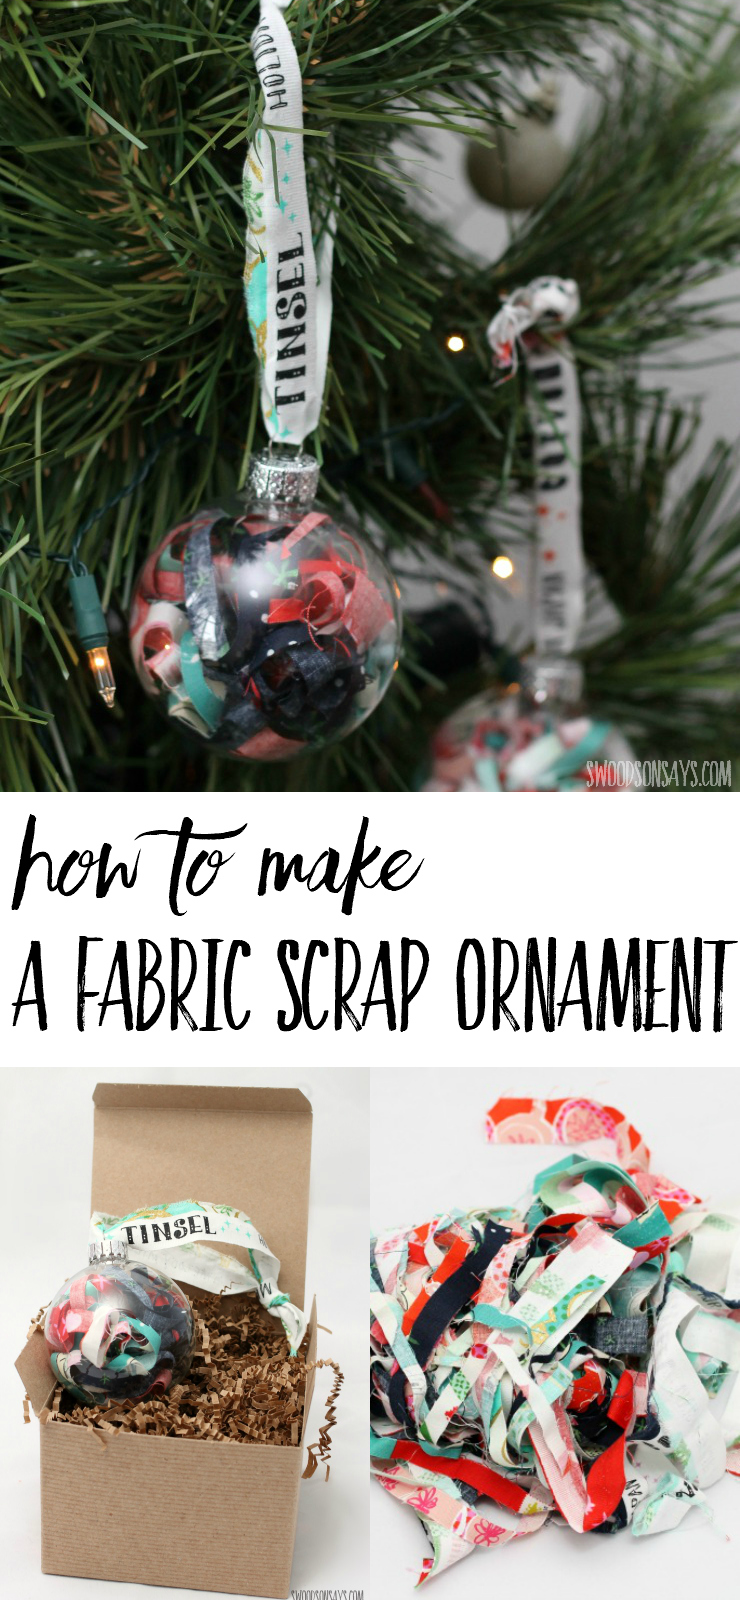 The quickest DIY ornament you'll ever find; use your prettiest fabric scraps and make this DIY fabric scrap ornament! No sew ornaments are my favorite, and this uses up every last bit of fabric. #nosewornament